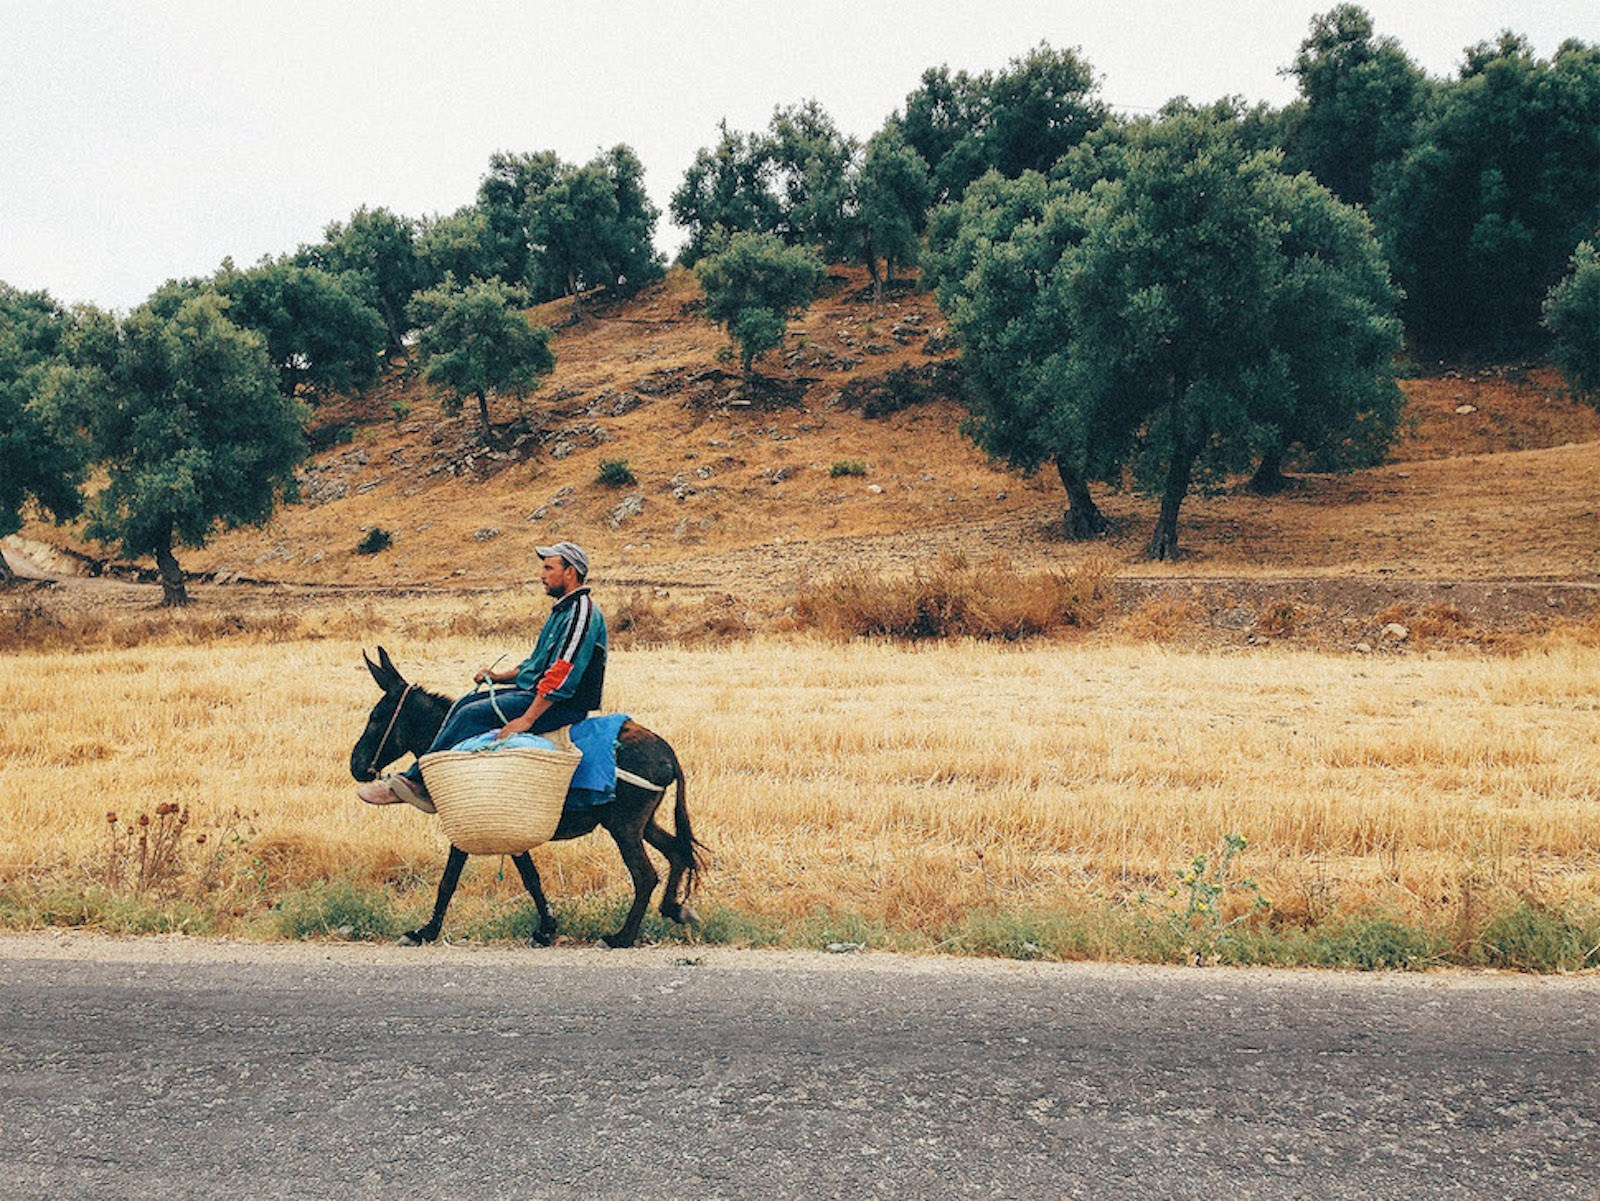 IGNANT-Travel-Best-Of-Road-Trips-Morocco-03